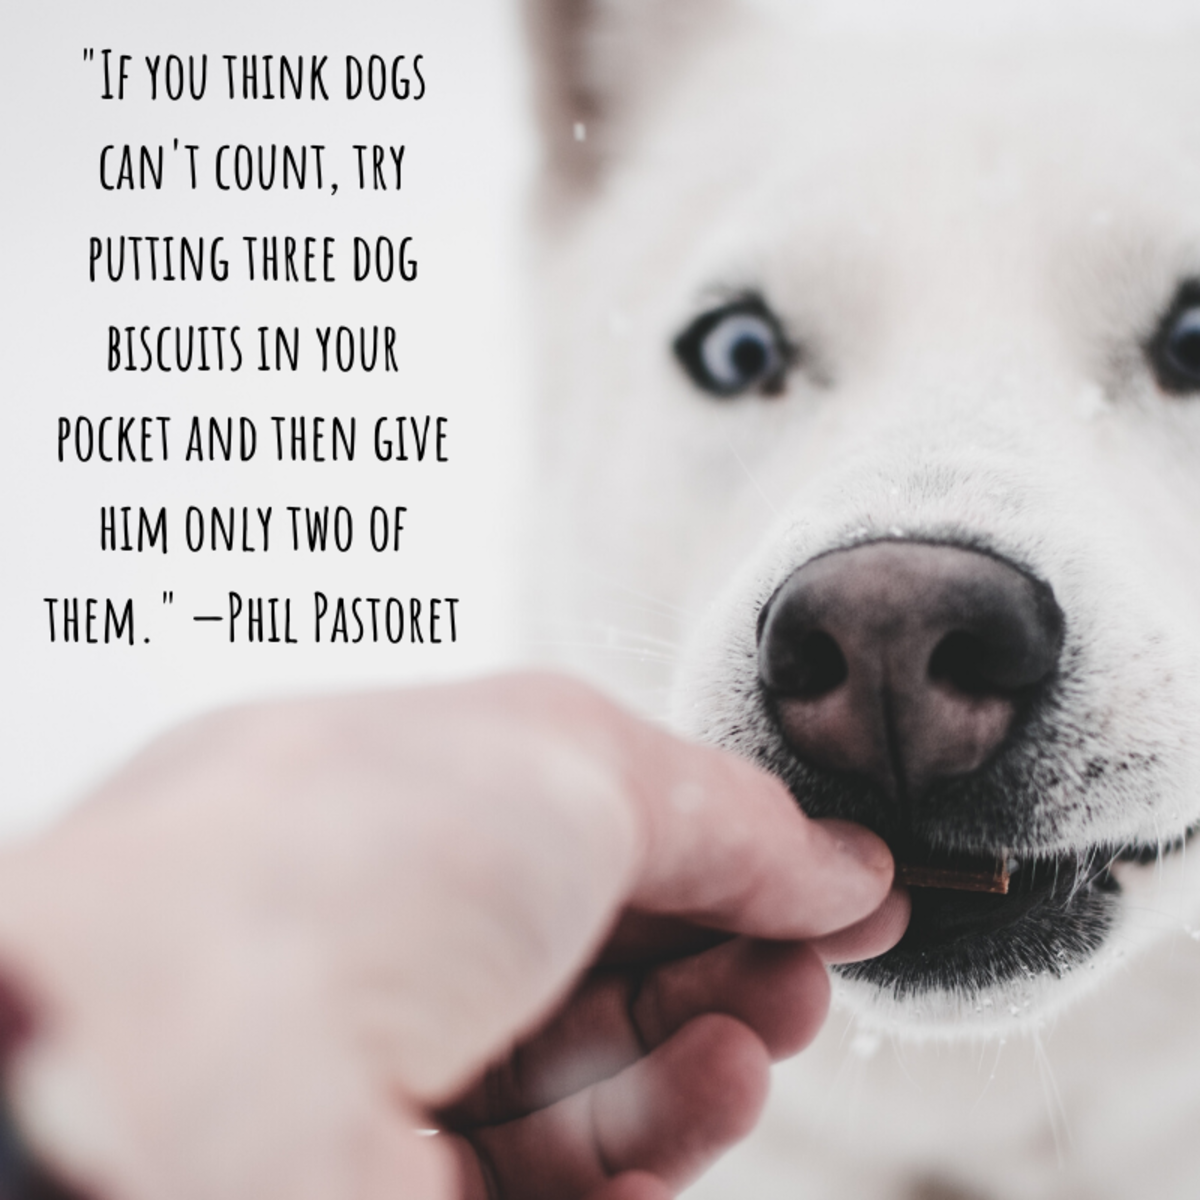 """If you think dogs can't count, try putting three dog biscuits in your pocket and then give him only two of them."" —Phil Pastoret"